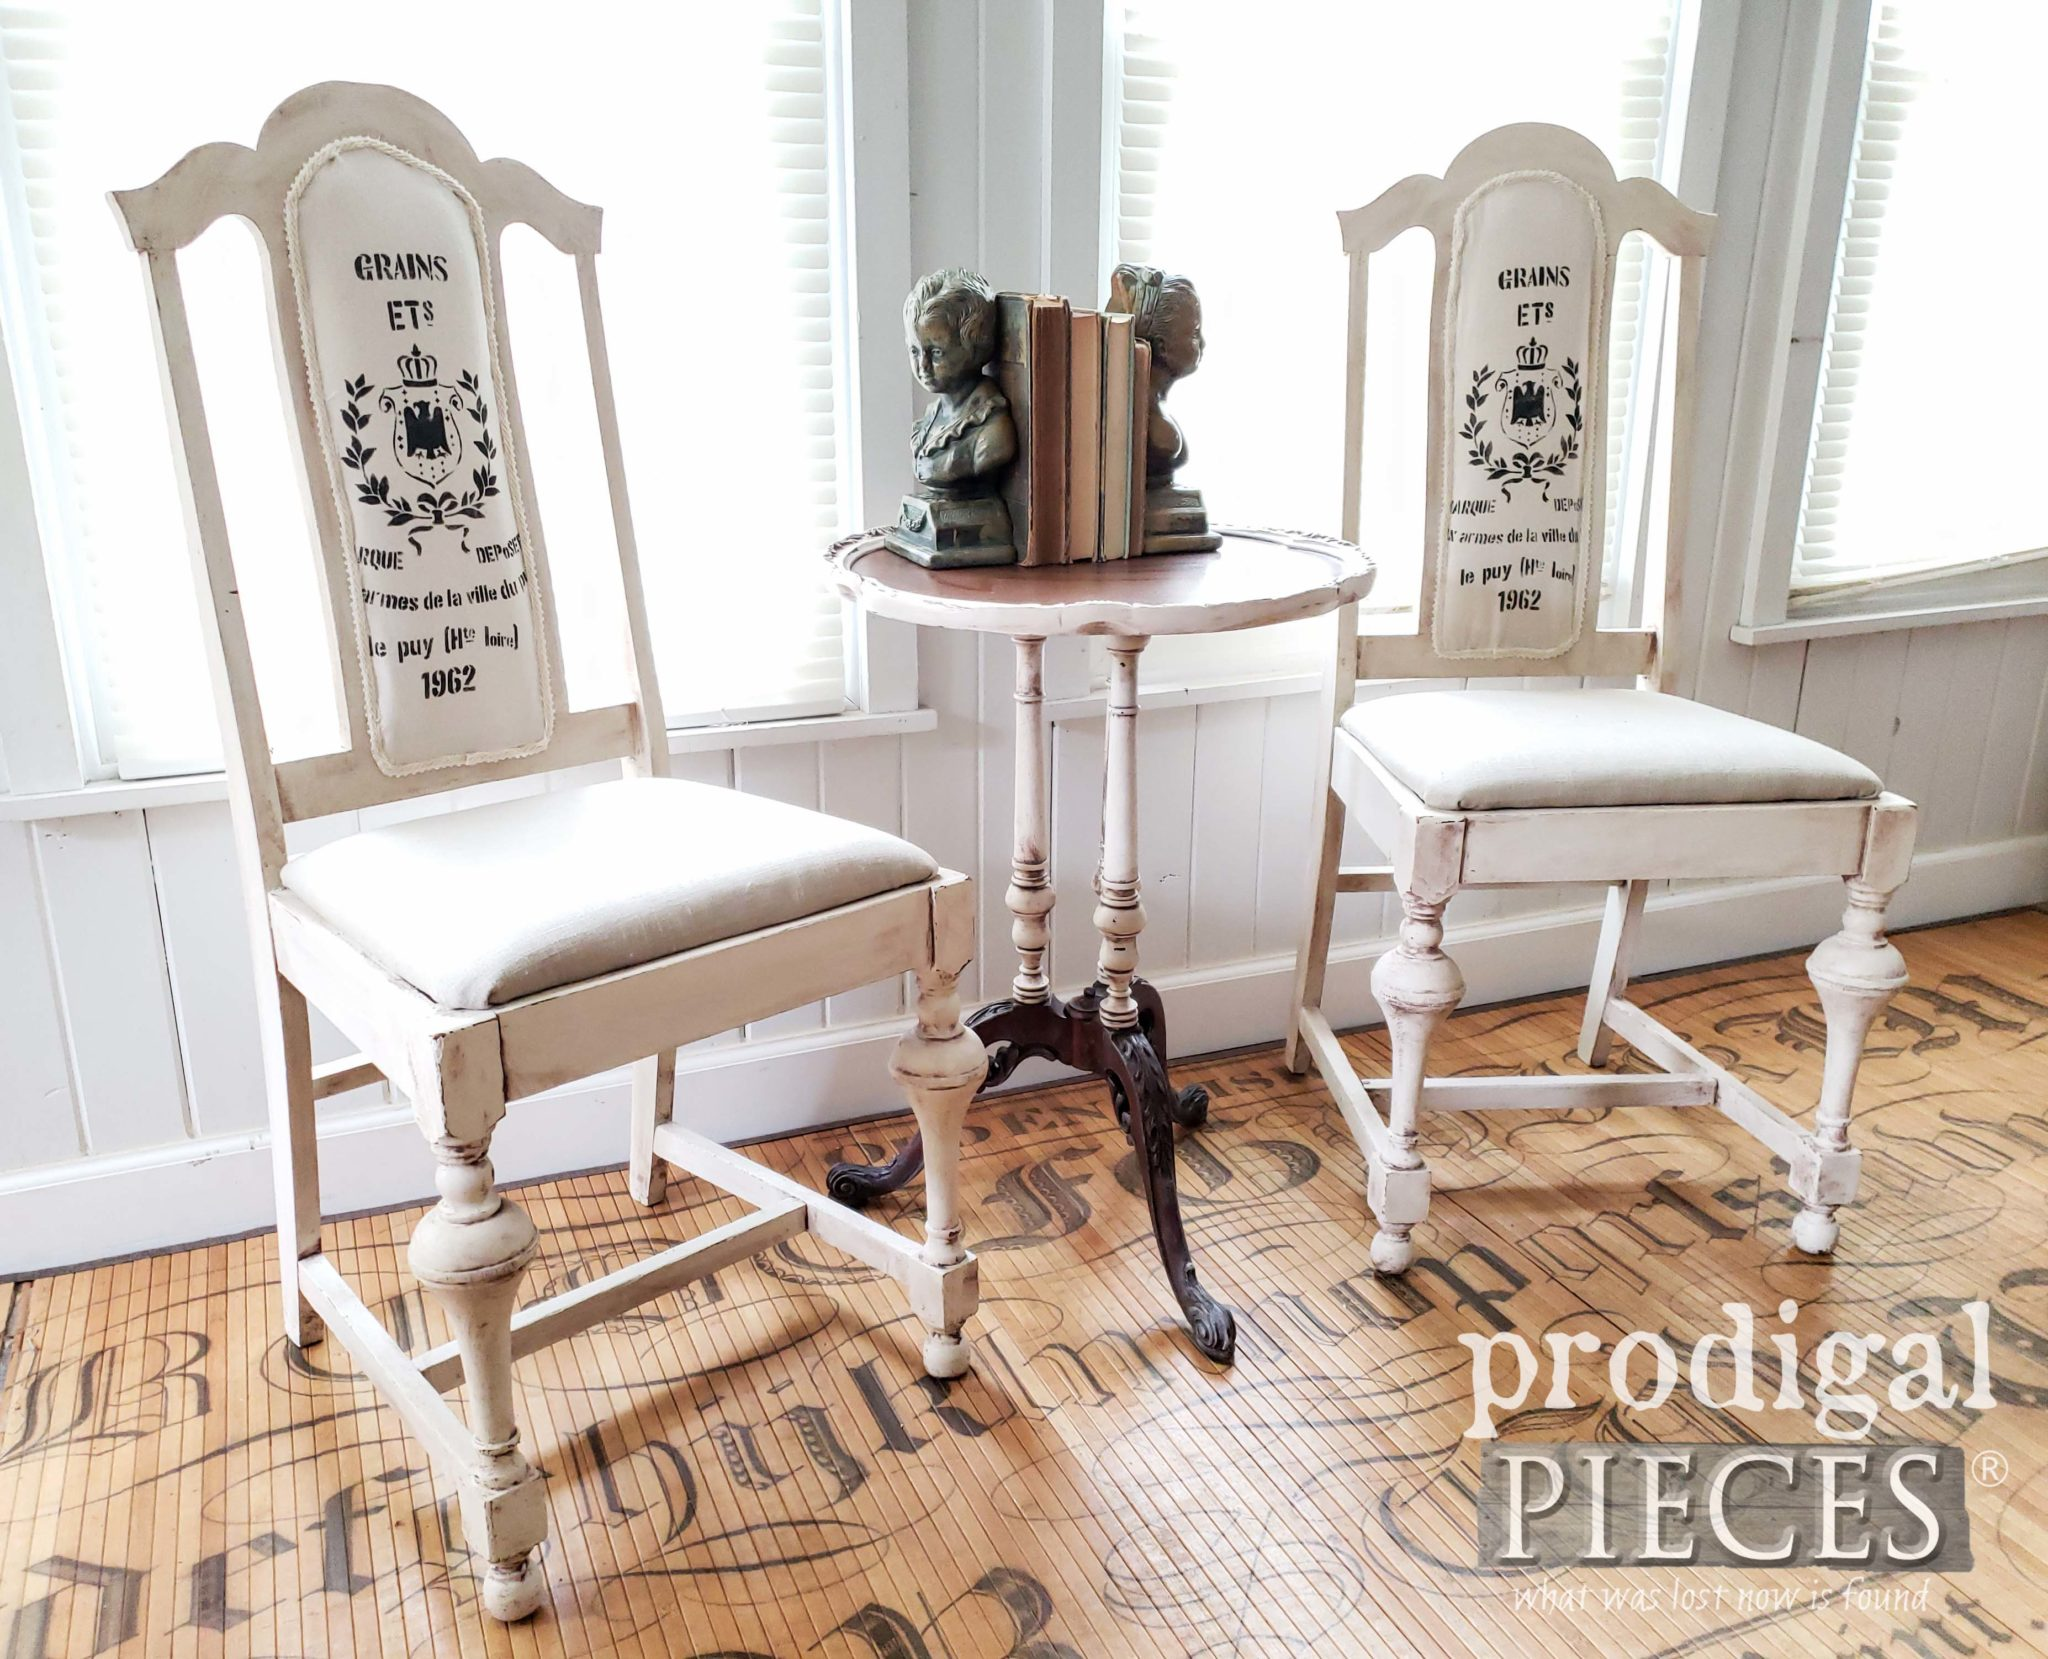 French Chic Dining Chairs with Linen and Grain Sack Details by Larissa of Prodigal Pieces | prodigalpieces.com #prodigalpieces #diy #home #furniture #homedecor #vintage